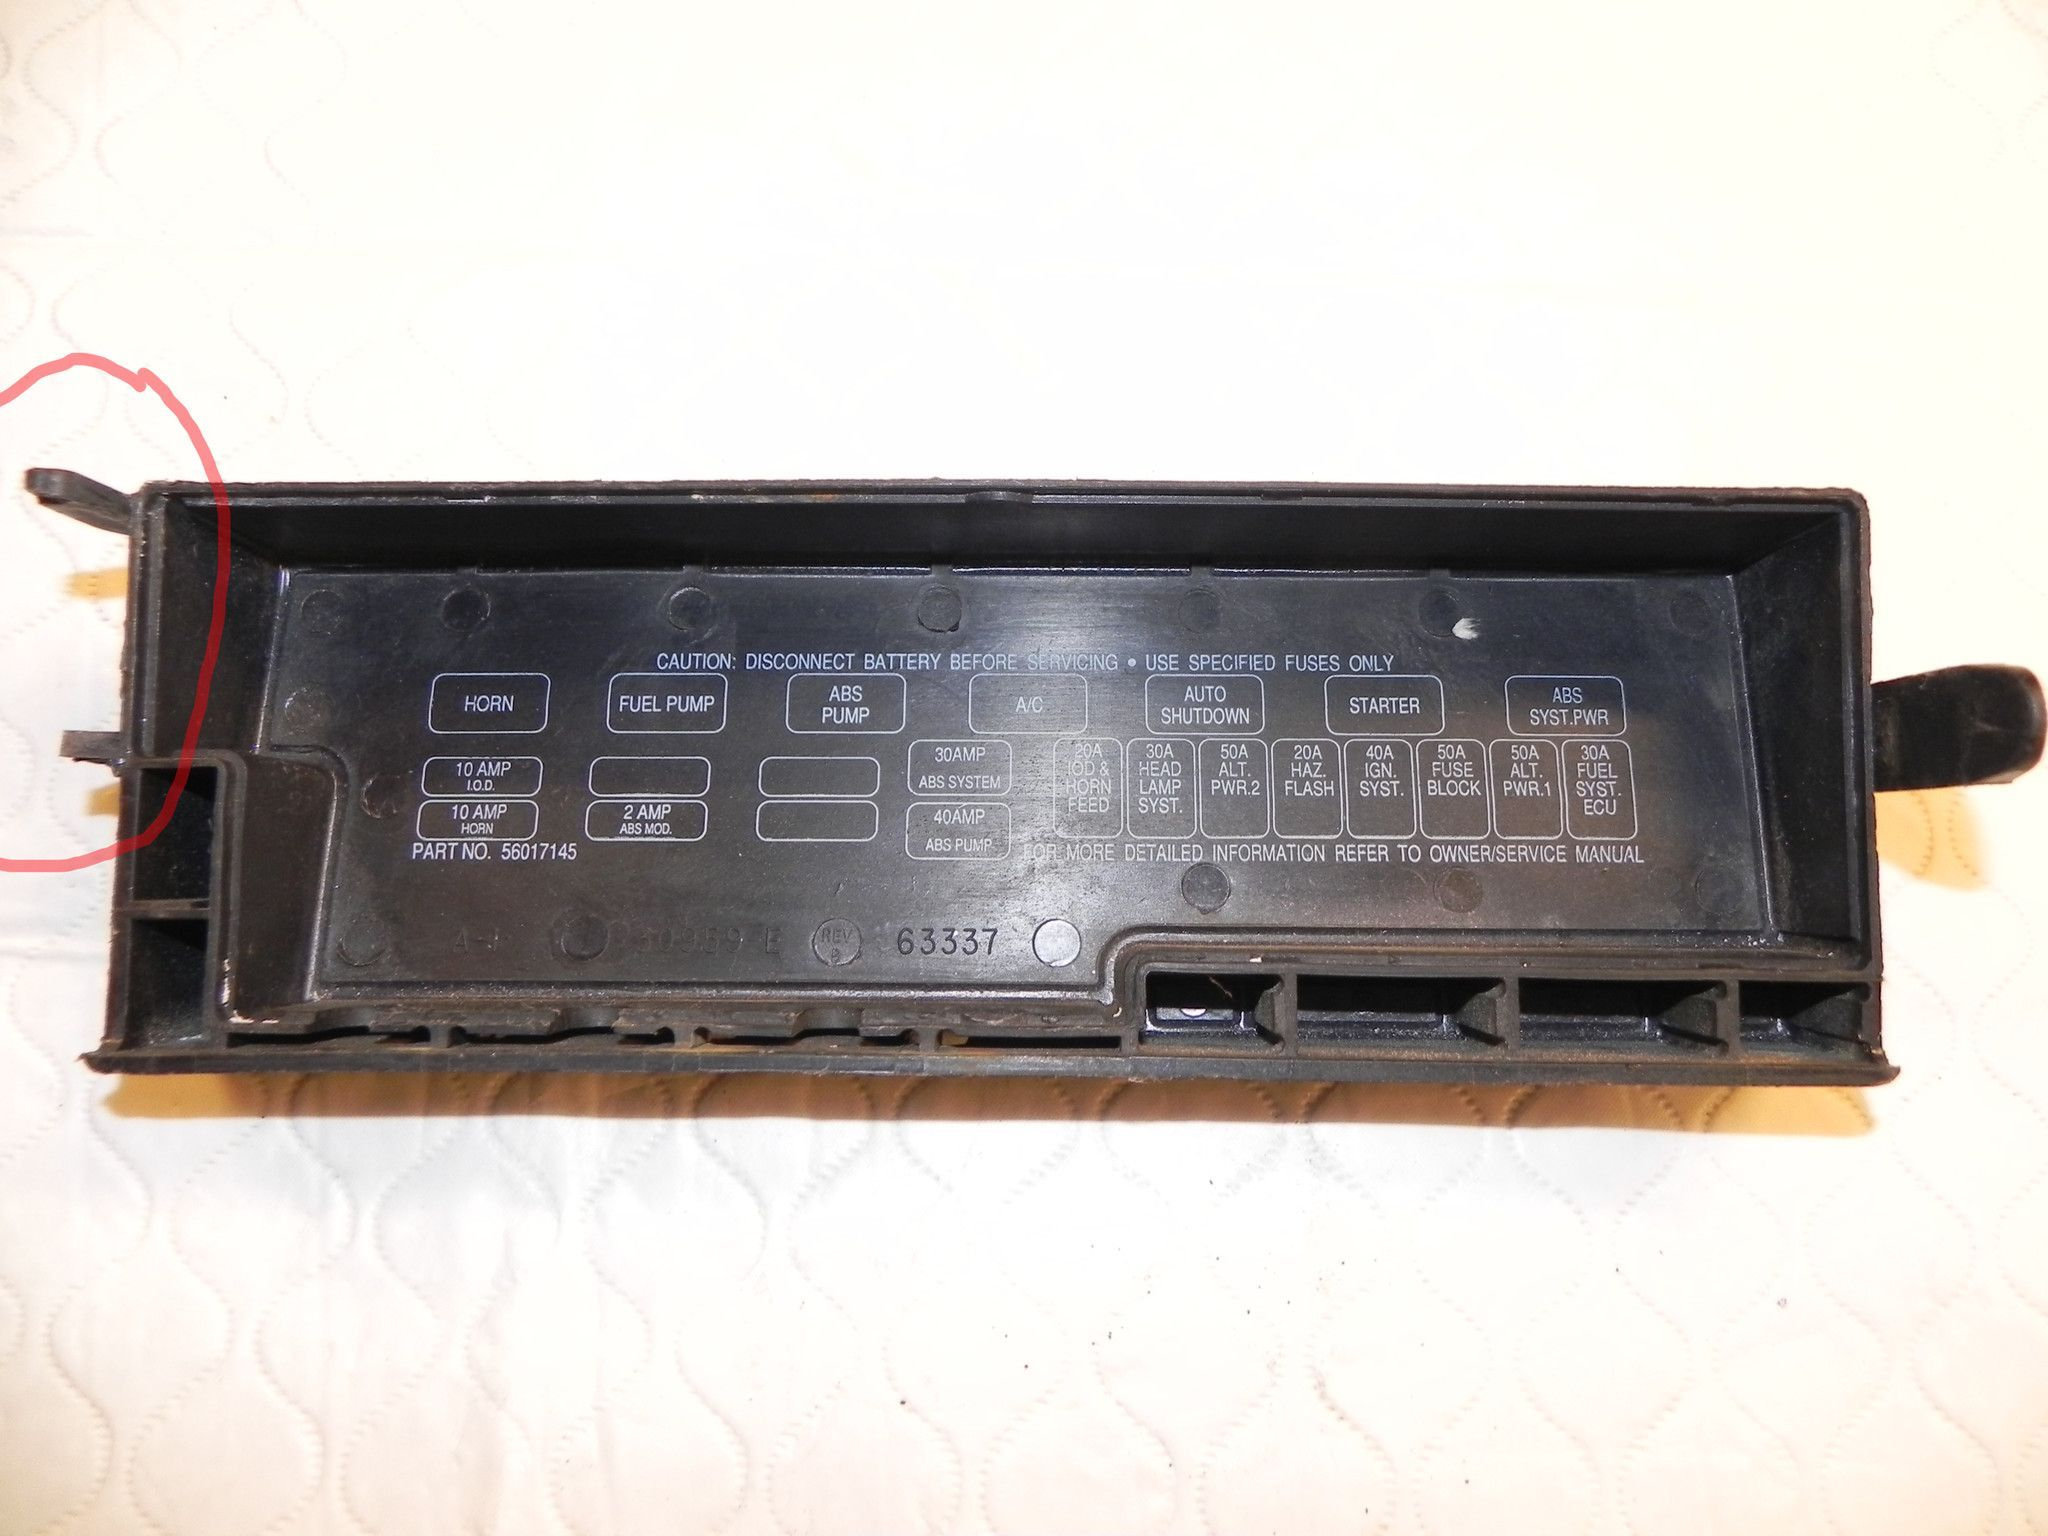 jeep wrangler yj upper fuse box cover power distribution center 91-95 oem